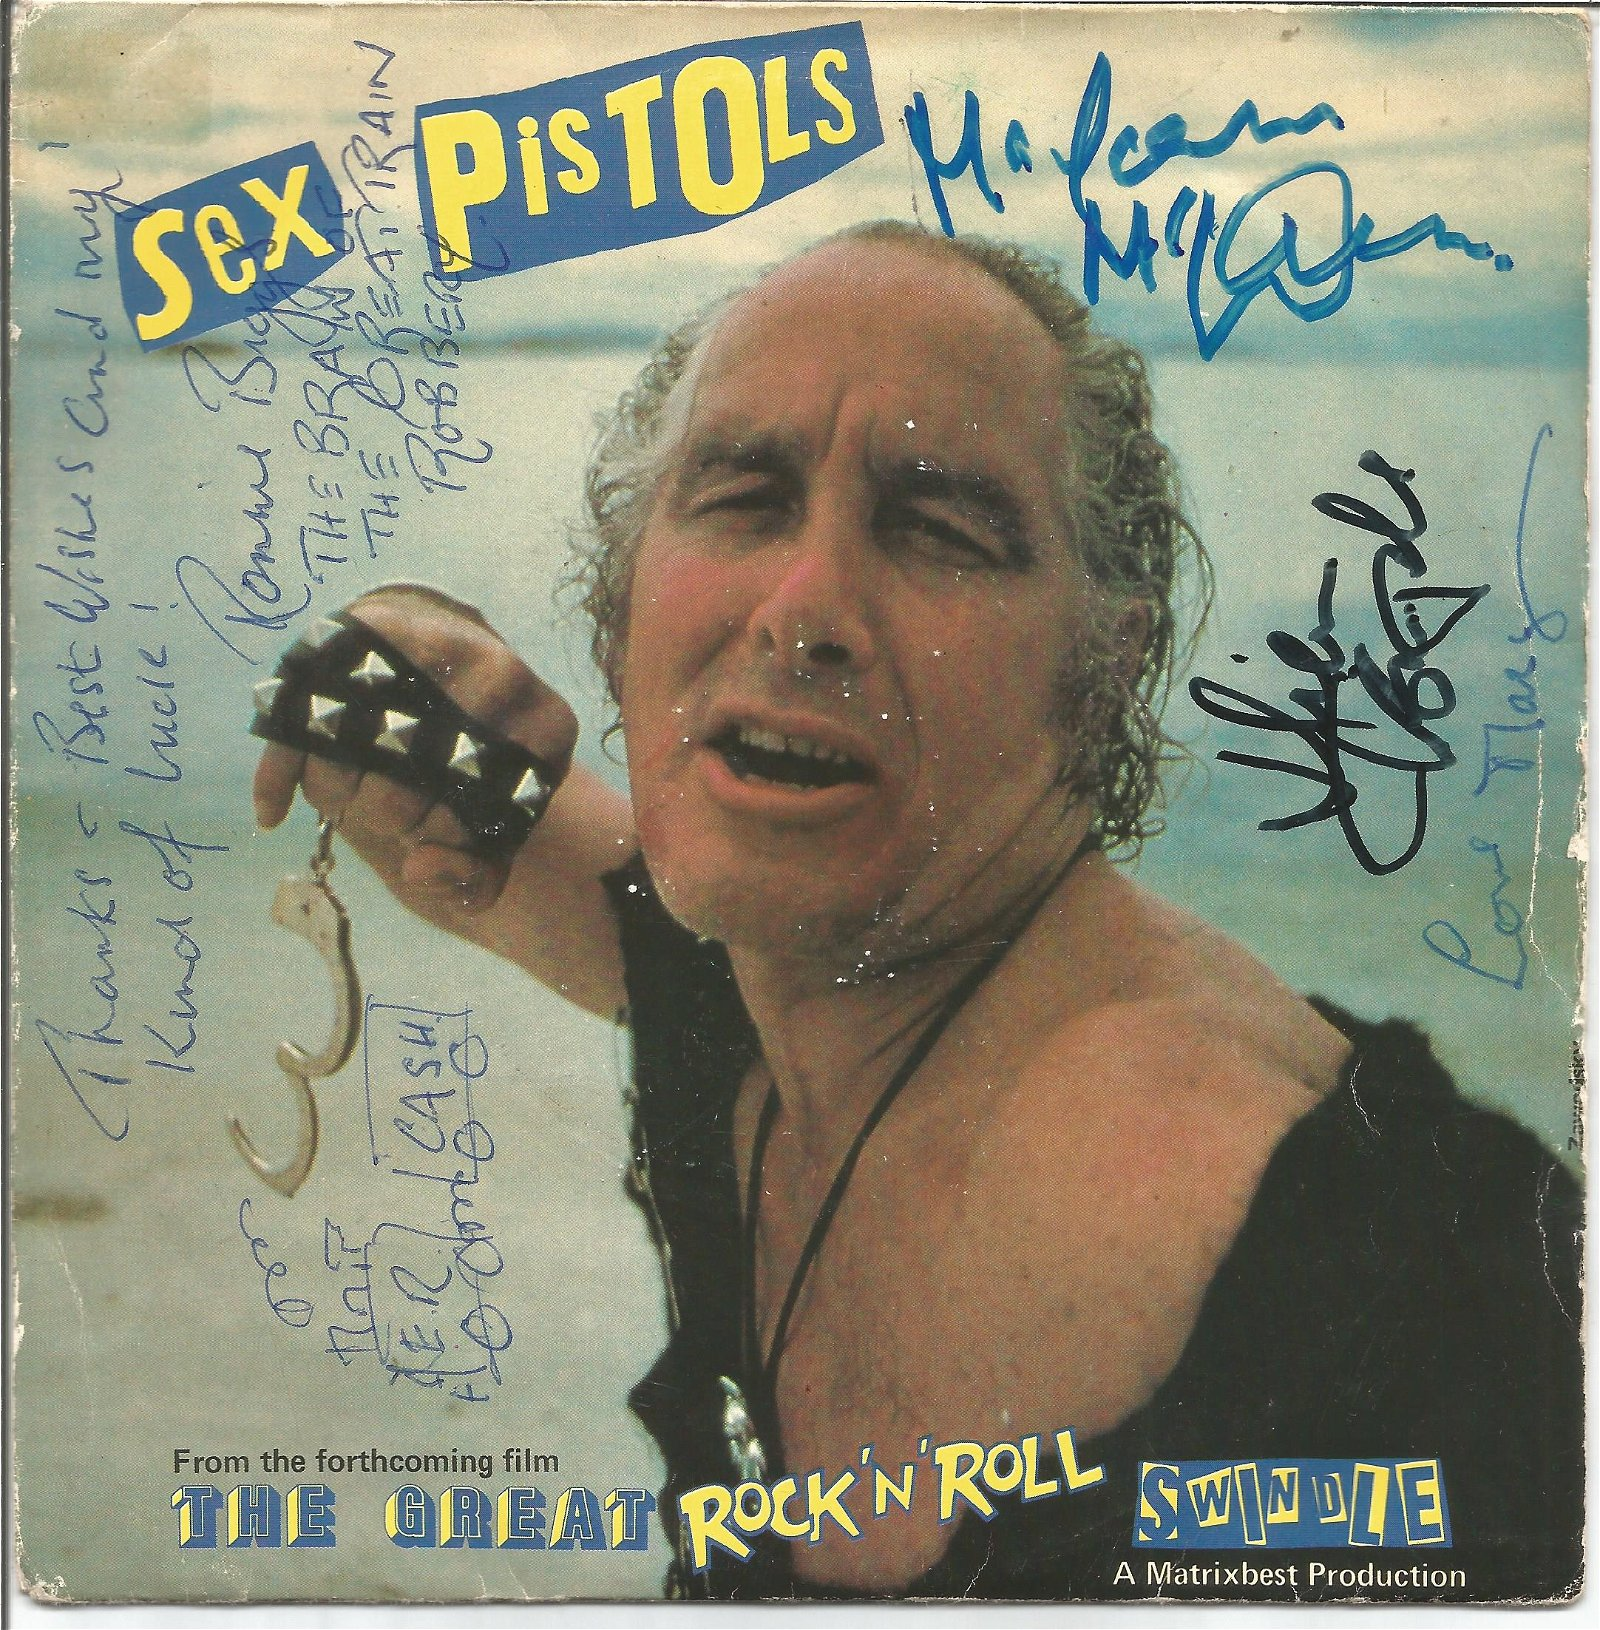 Ronnie Biggs and 3 others signed 45rpm record sleeve